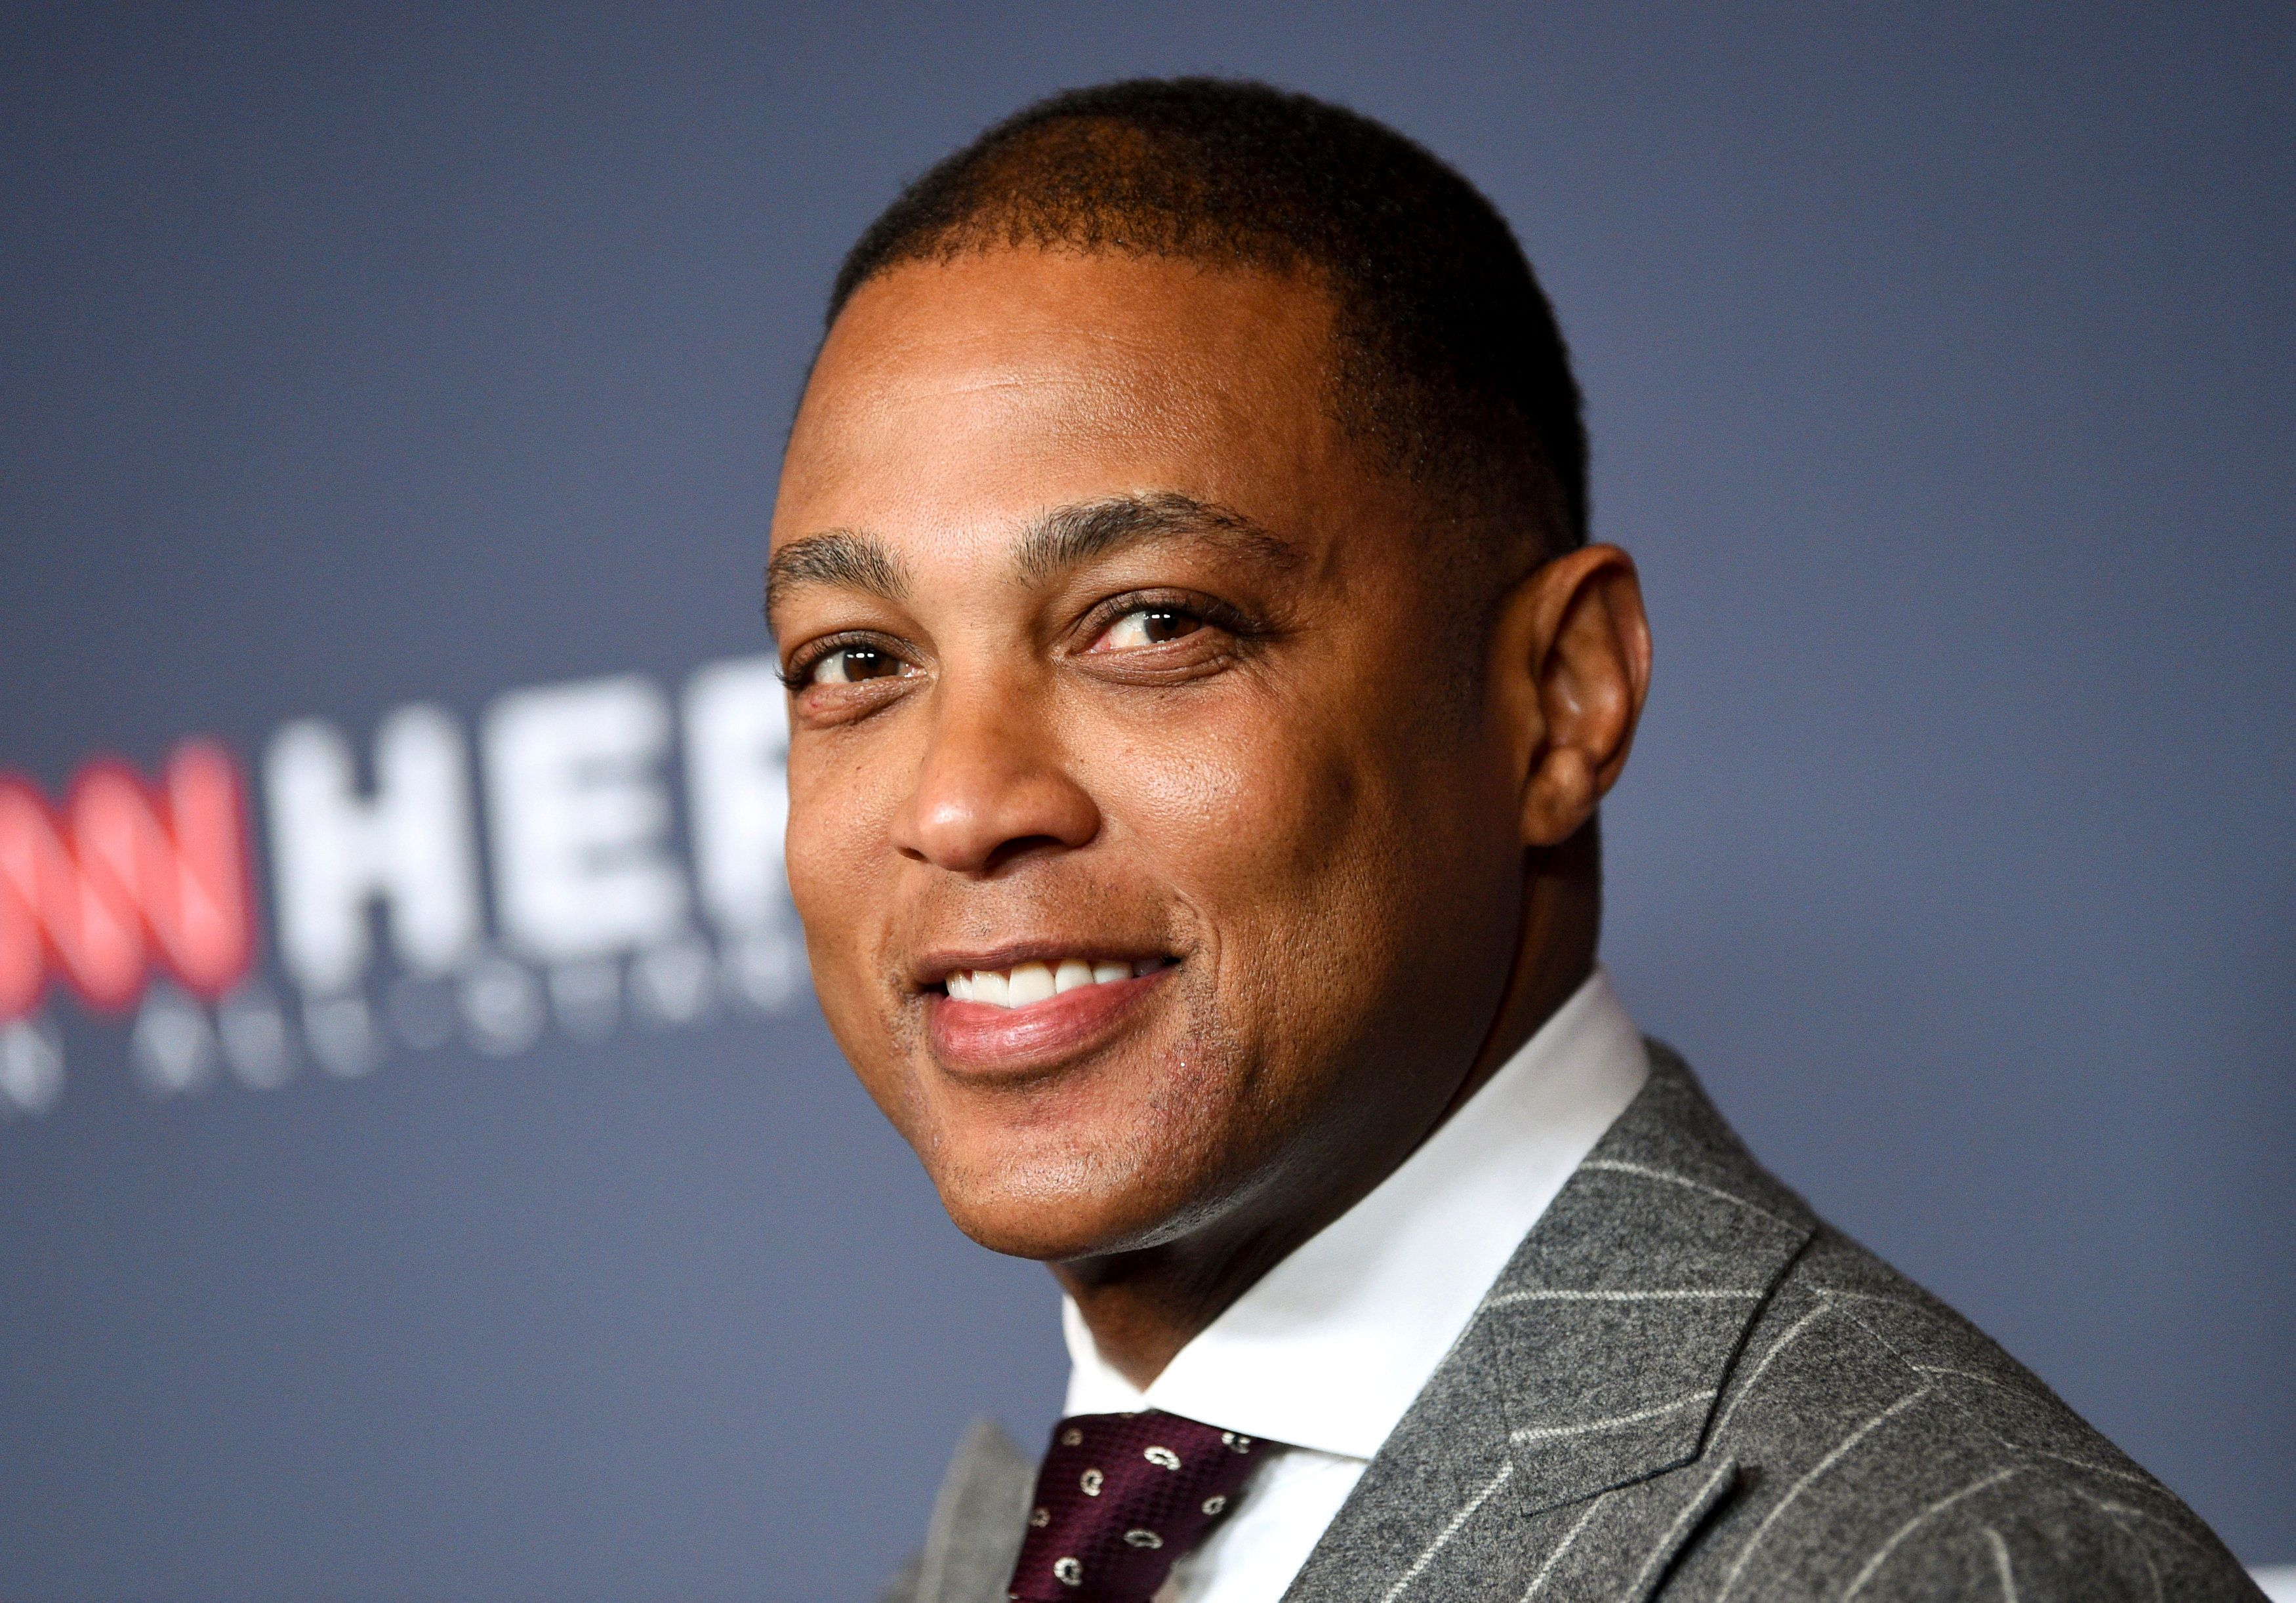 CNN anchor Don Lemon attends the 12th annual CNN Heroes: An All-Star Tribute at the American Museum of Natural History on Sunday, Dec. 9, 2018, in New York. (Photo by Evan Agostini/Invision/AP)